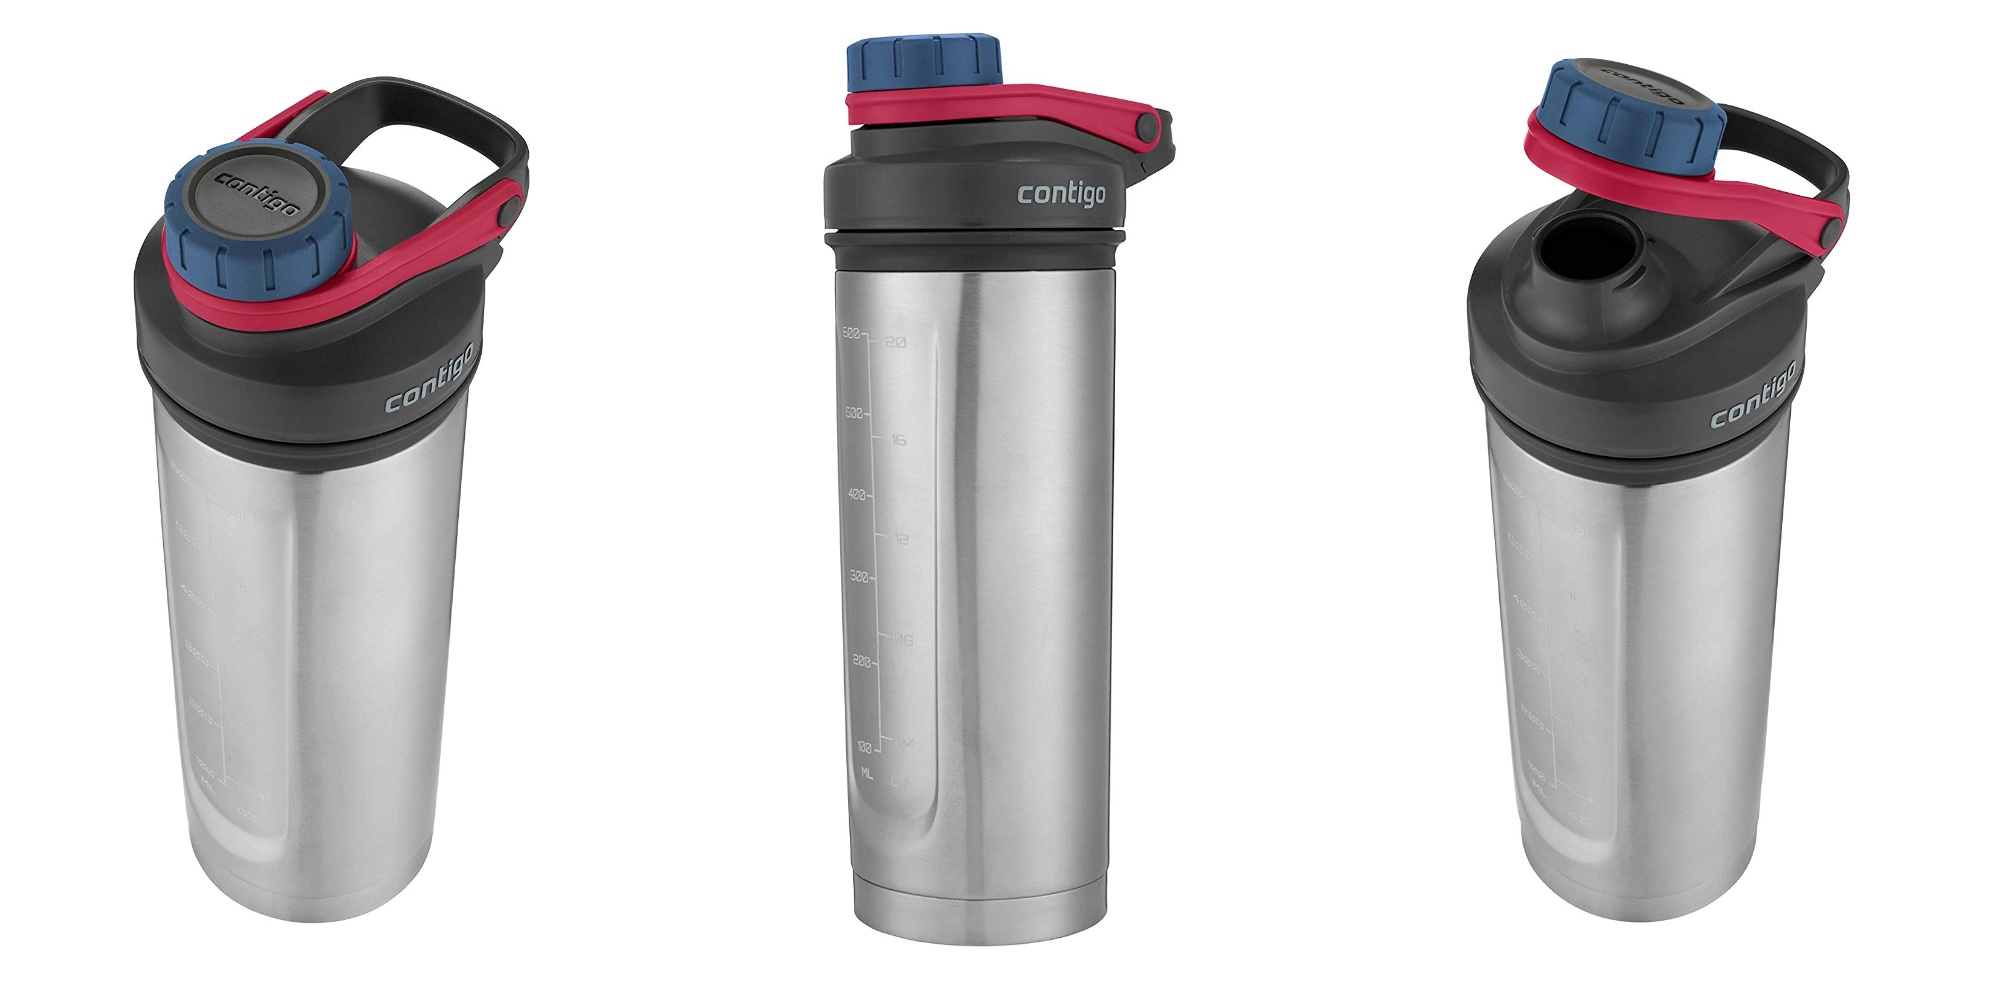 Contigo's Vacuum-Insulated Shake & Go Bottle returns to Amazon low at $6 Prime shipped